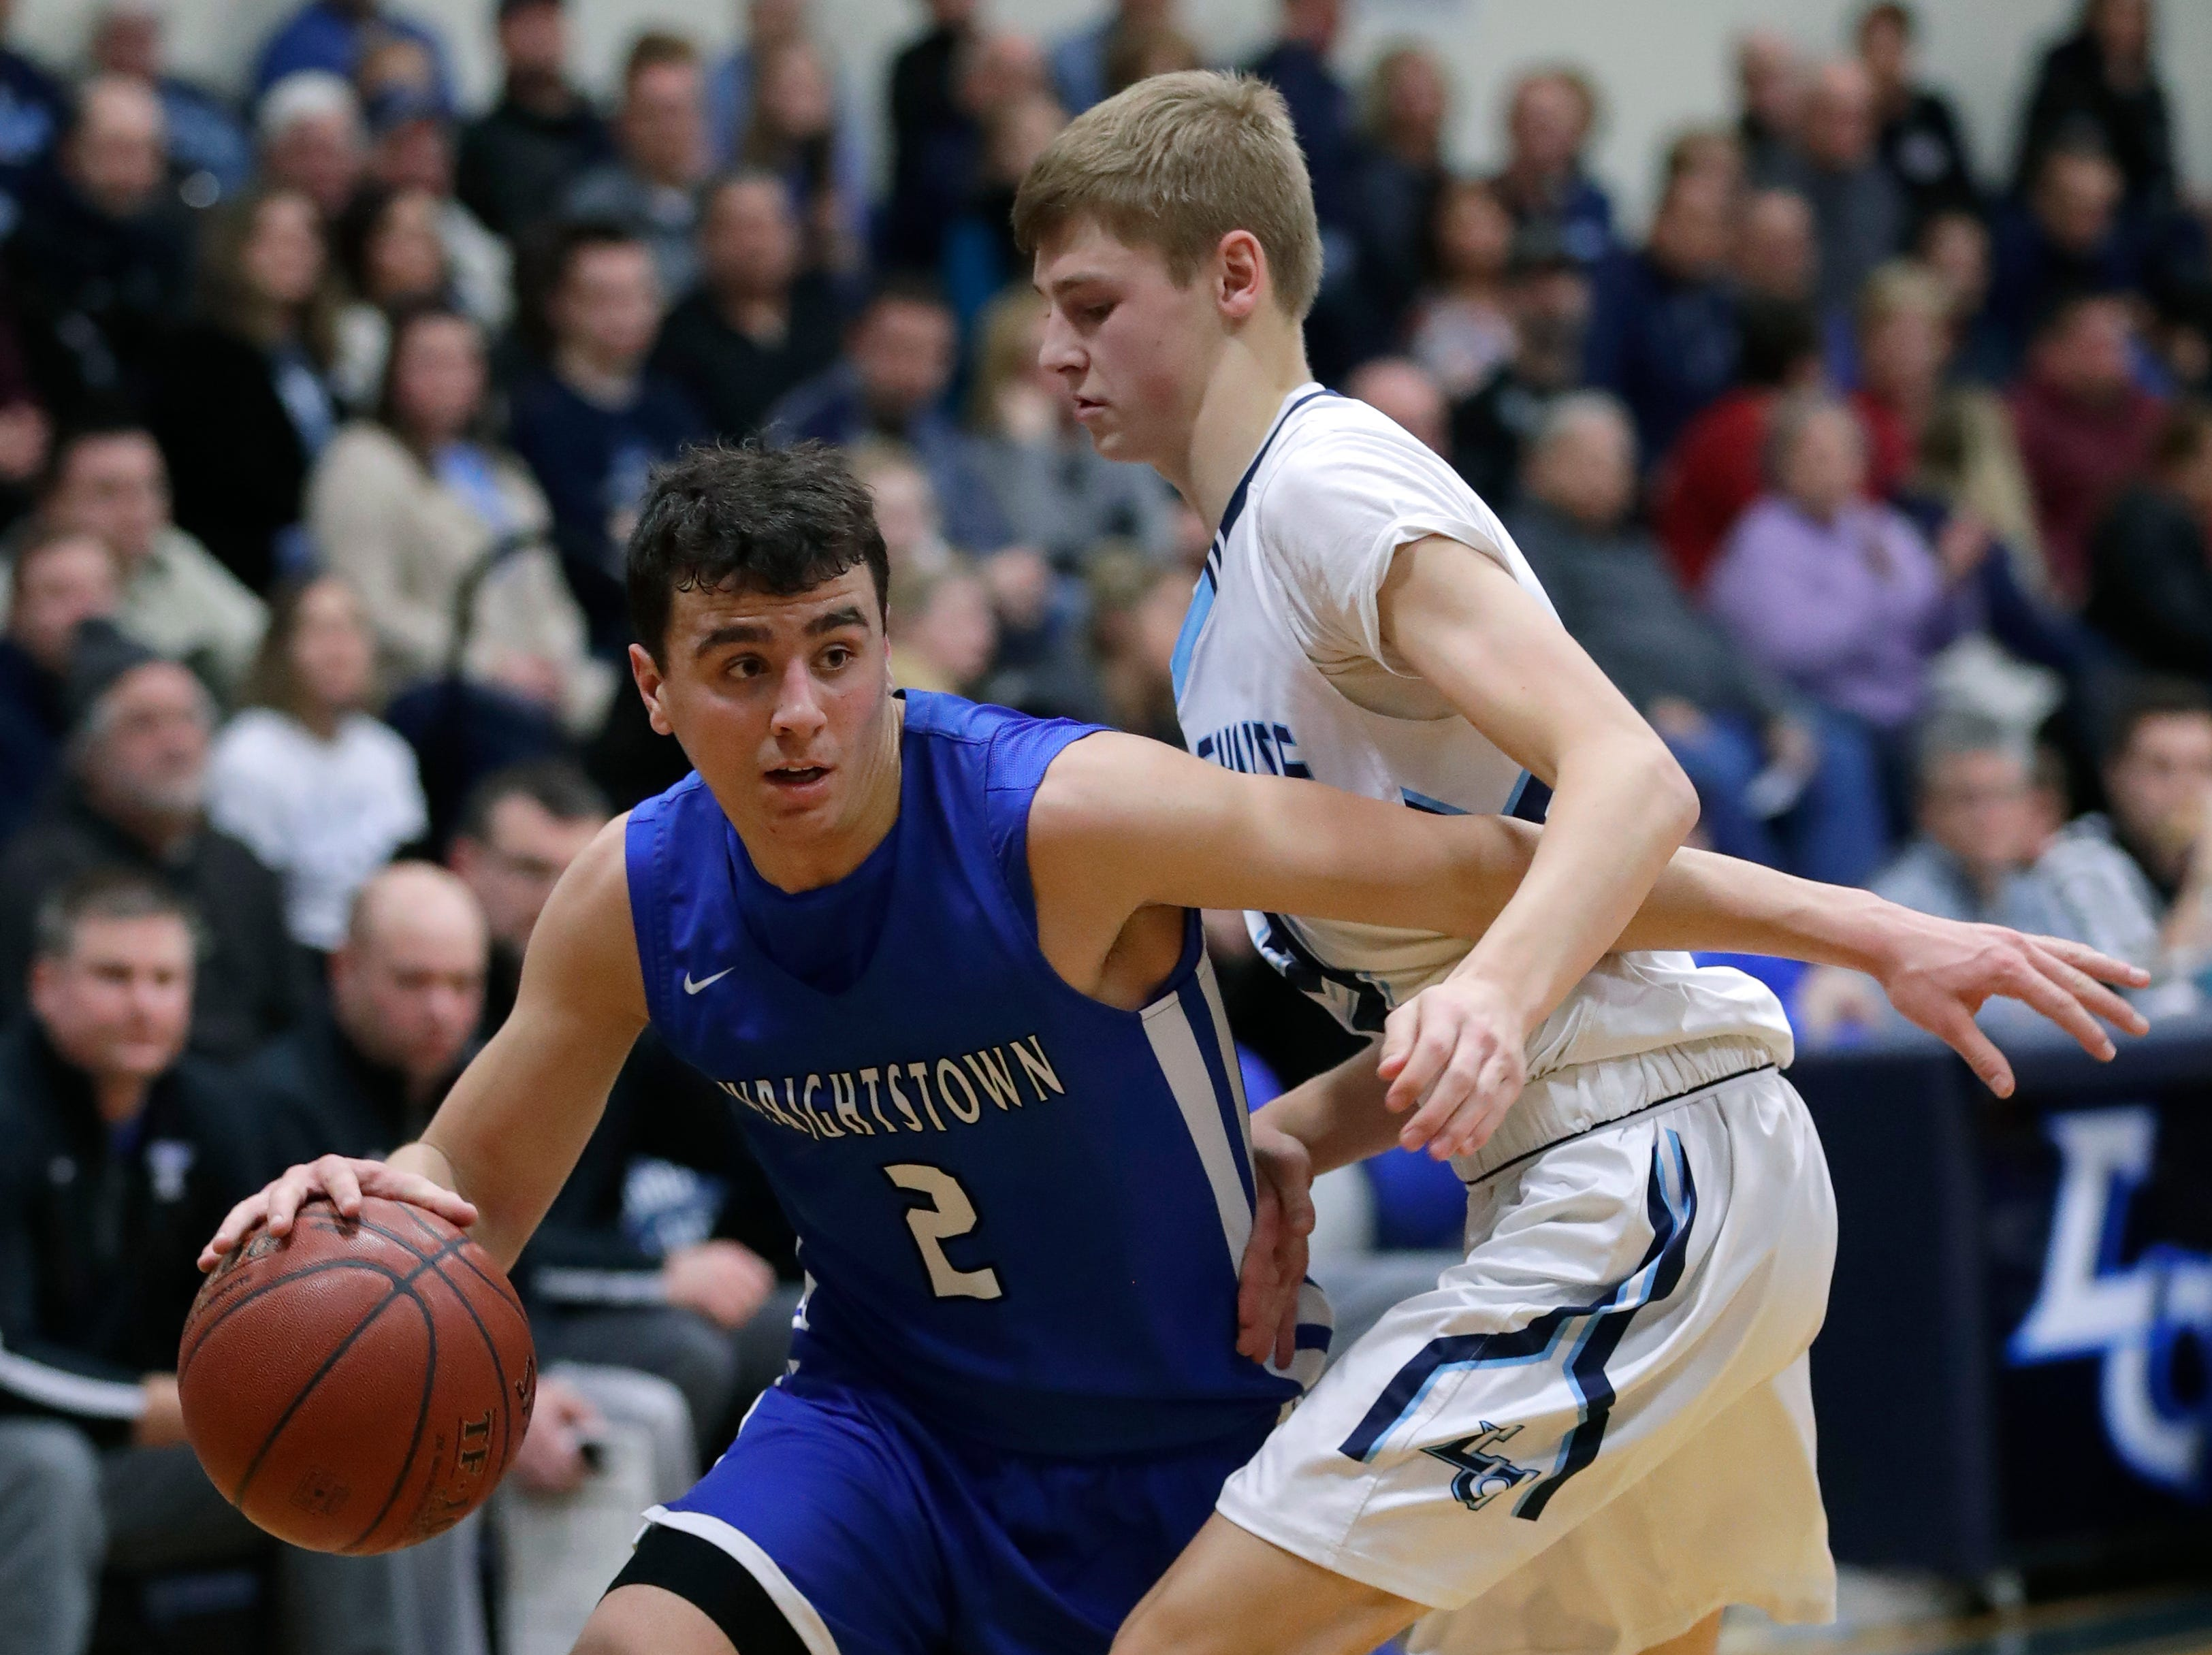 Wrightstown High School's Jeremy Van Zeeland (2) drives to the basket against Little Chute High School's  Justin Job (3) during their boys basketball game Friday, February 1, 2019, in Little Chute, Wis. 